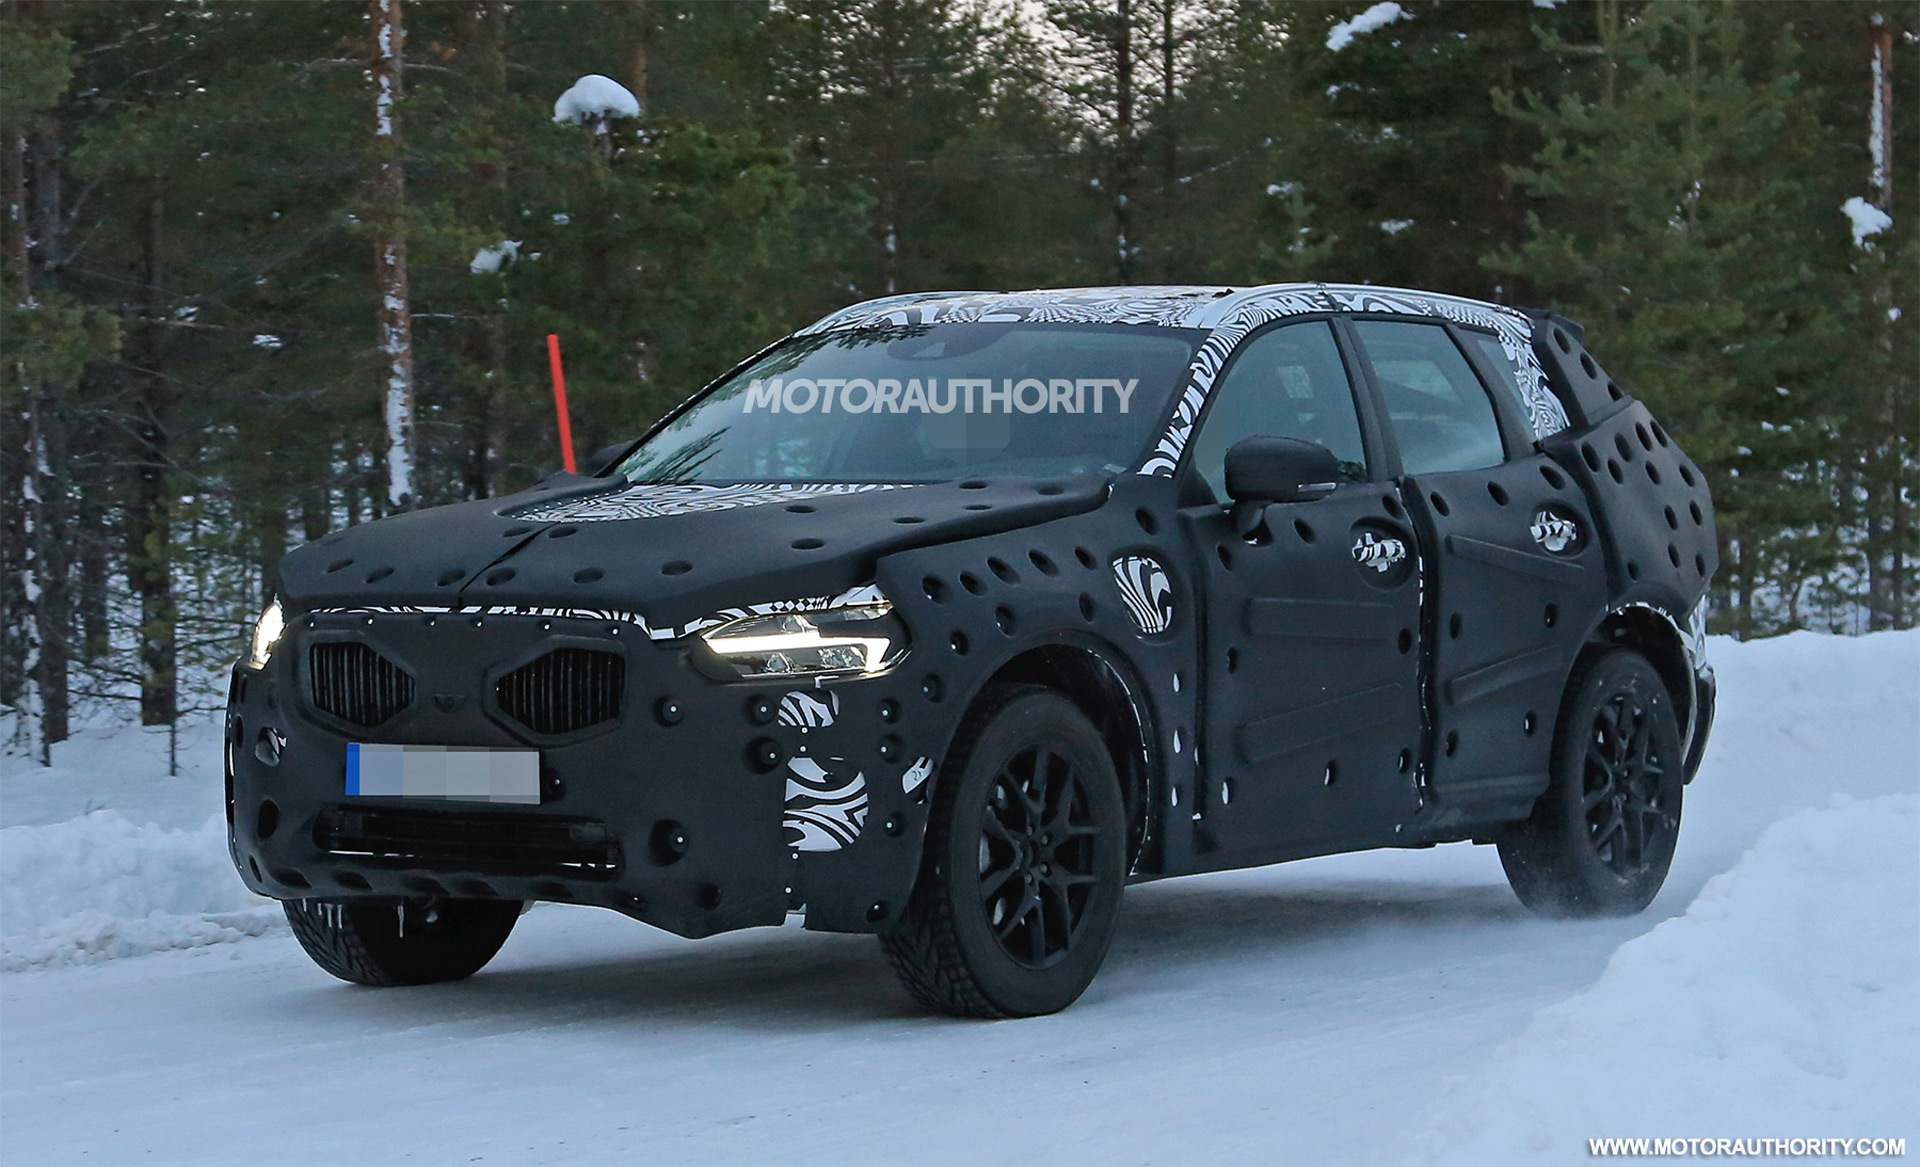 2018 volvo xc60 spy shots. 2018 volvo xc60 spy shots motorauthority